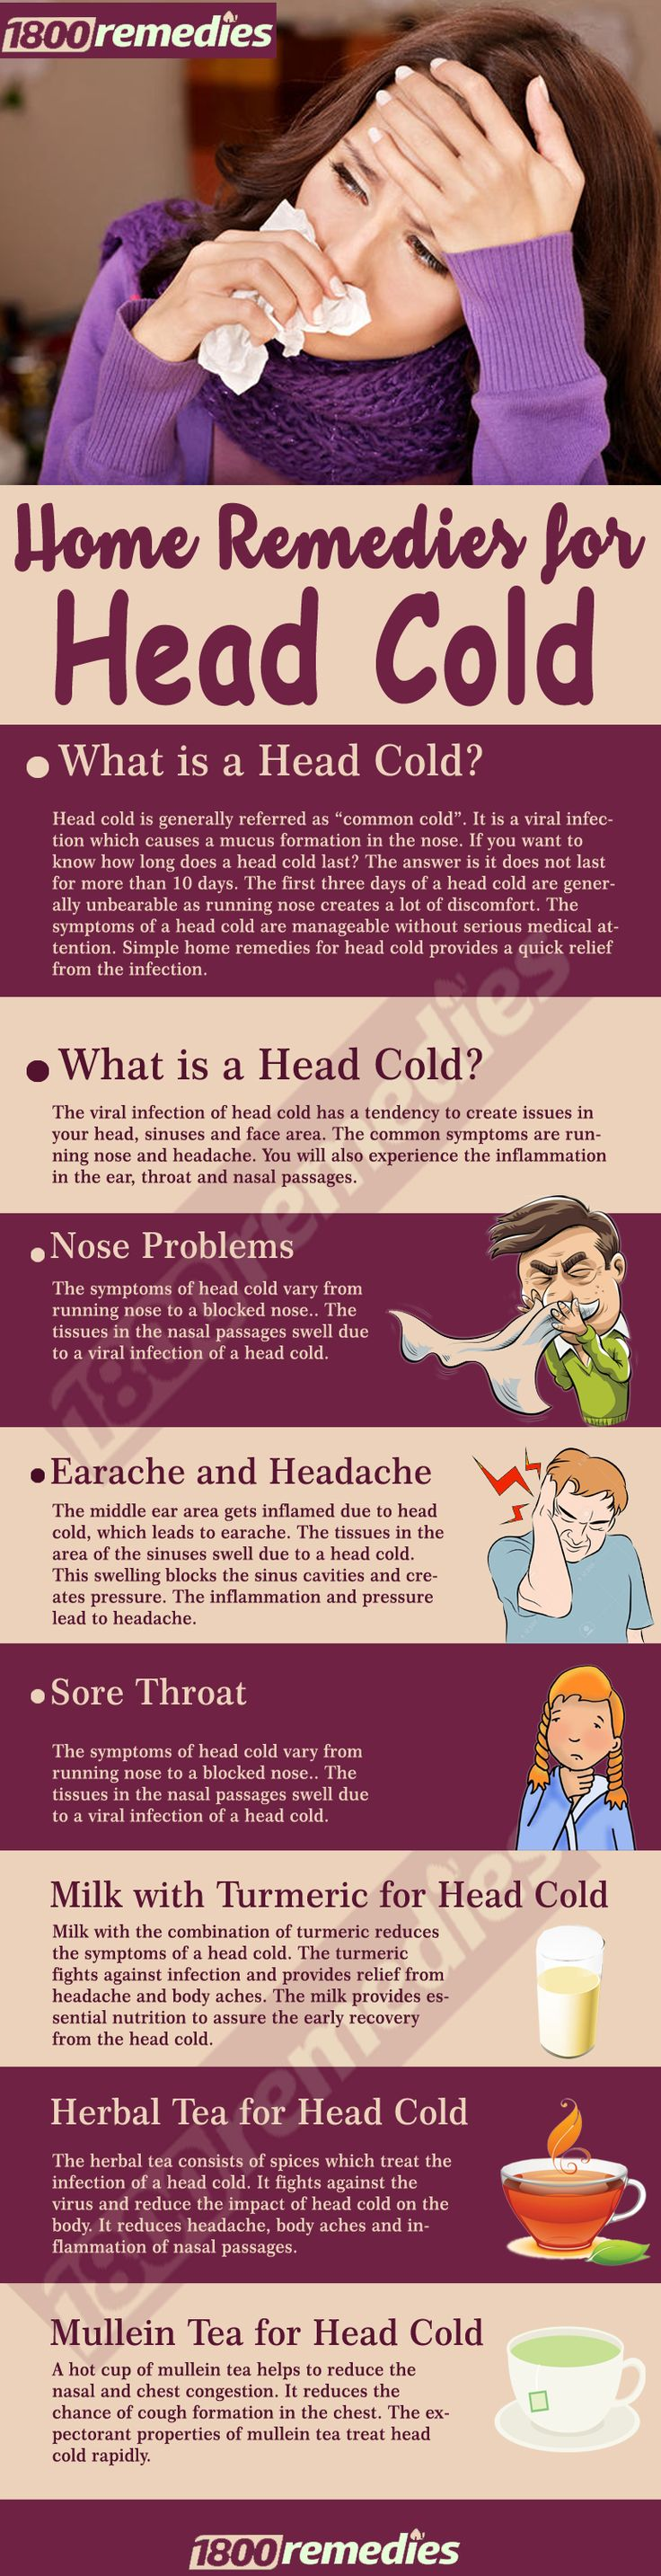 Home Remedies for Head Cold The home remedies for head cold include intake of a lot of fluid, which clears the nasal passage. The head cold remedies need the ingredients readily available in the kitchen and the process is effortless to implement.